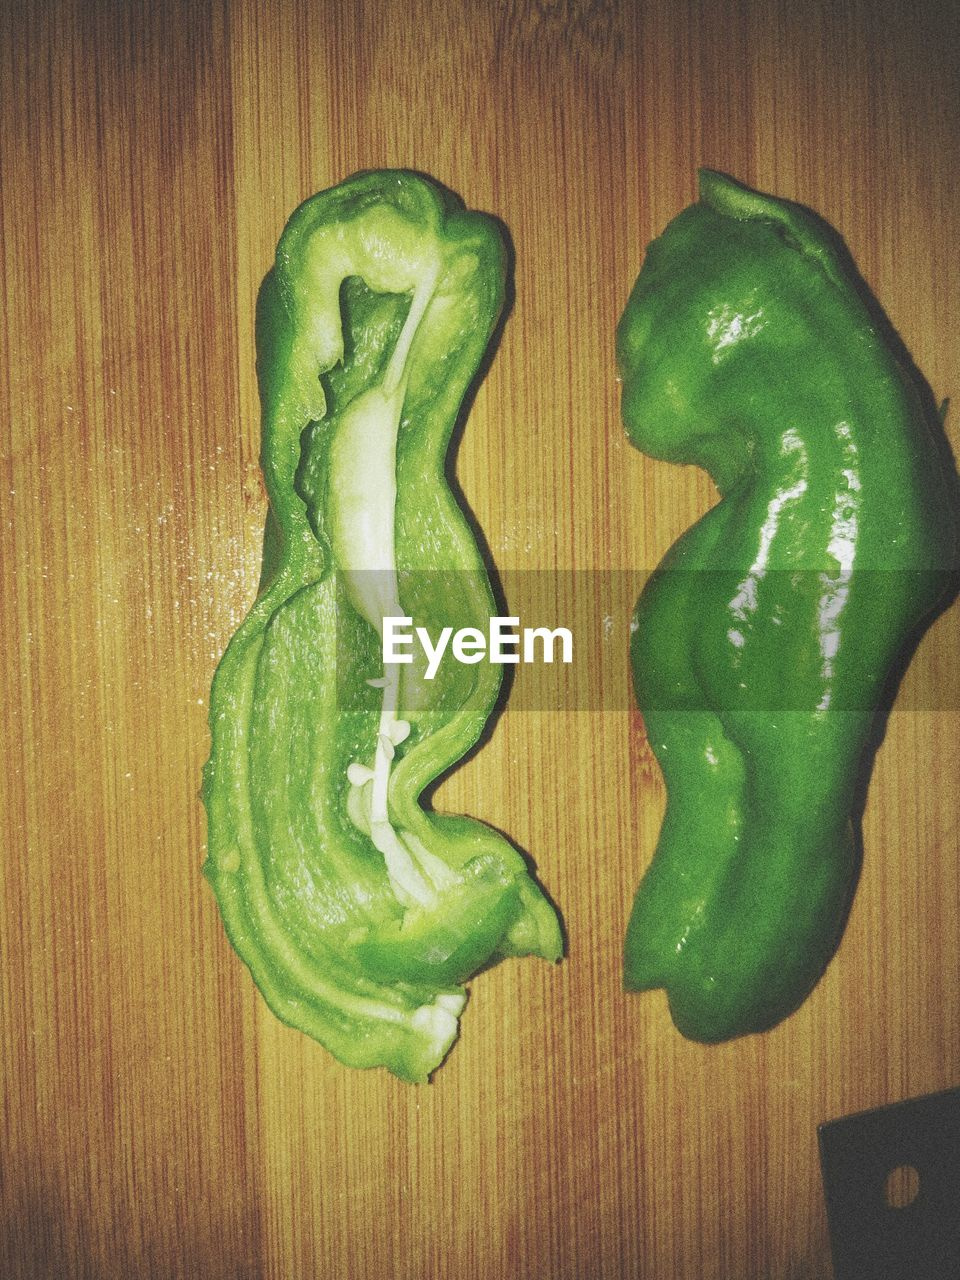 green color, vegetable, directly above, food and drink, bell pepper, no people, indoors, table, food, wood - material, healthy eating, freshness, wood grain, close-up, day